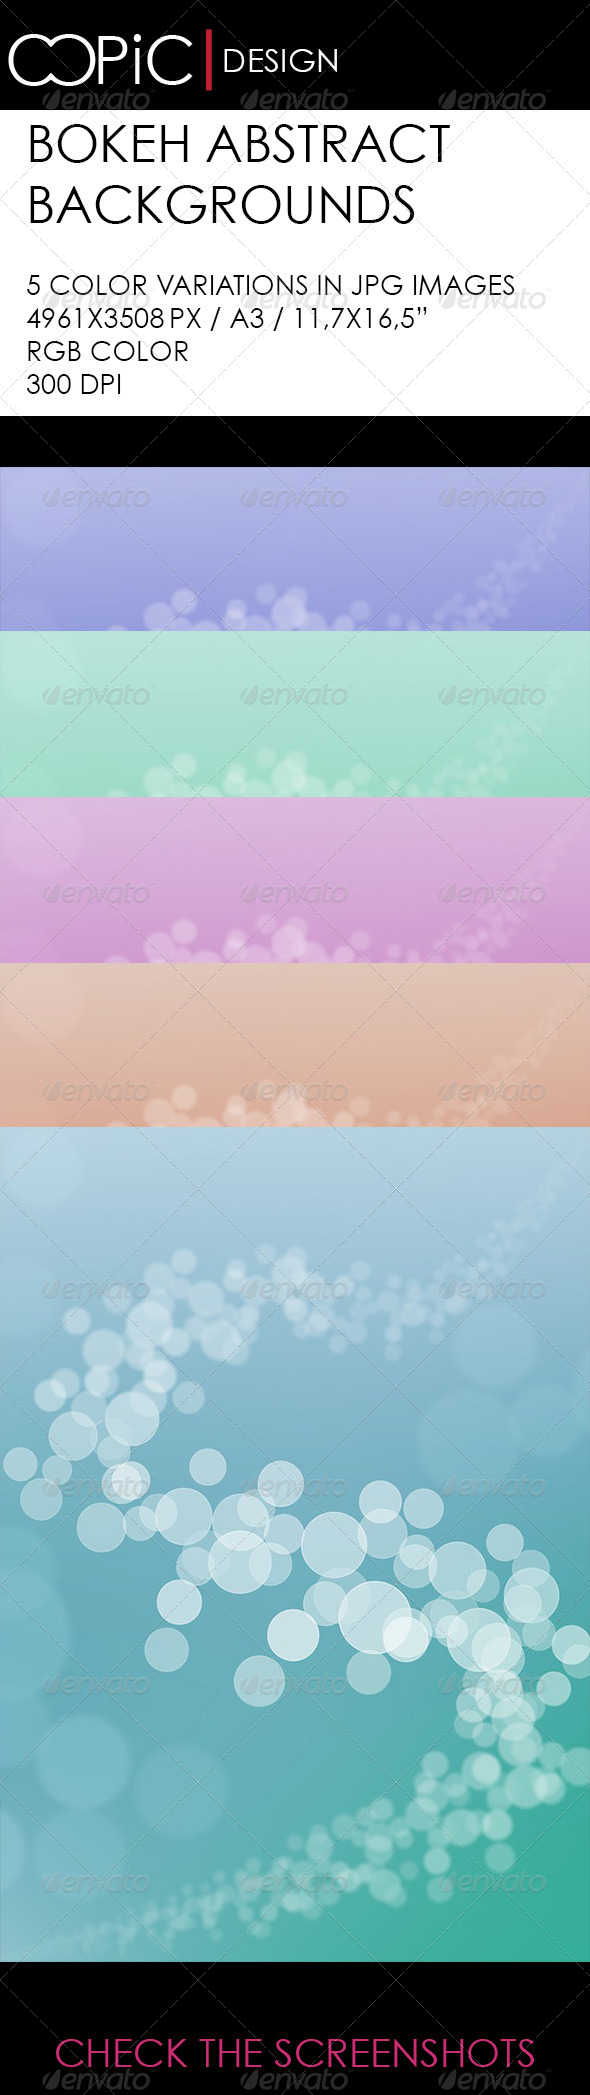 GraphicRiver Abstract Bokeh Backgrounds 5852194